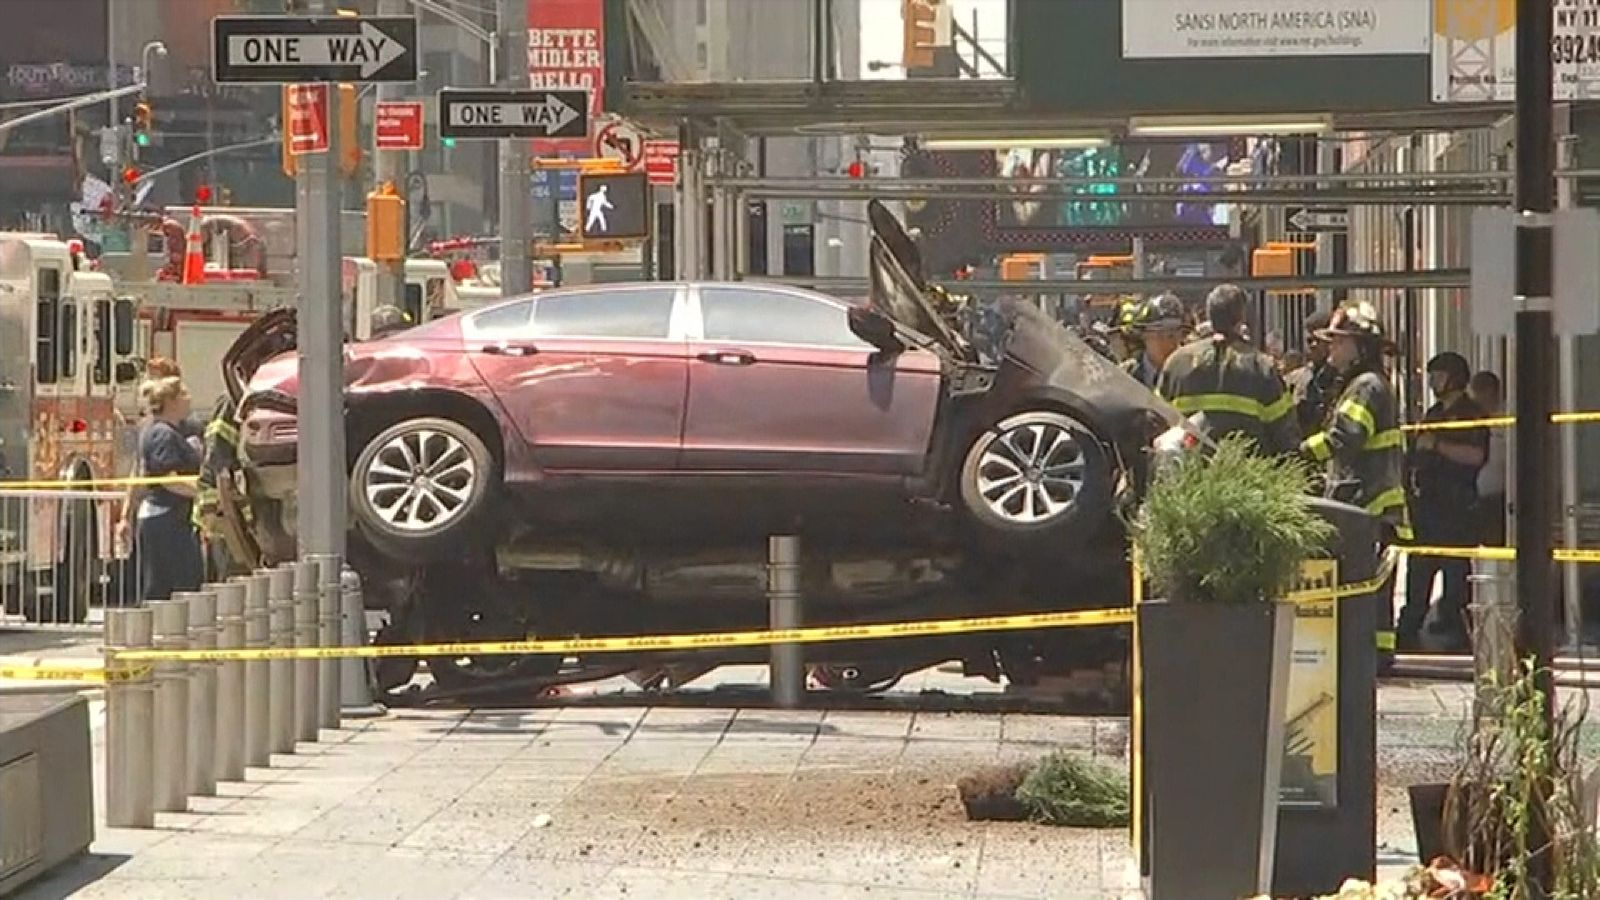 Surveillance Videos Reveal Extent Of Driver's Horrifying Times Square Rampage